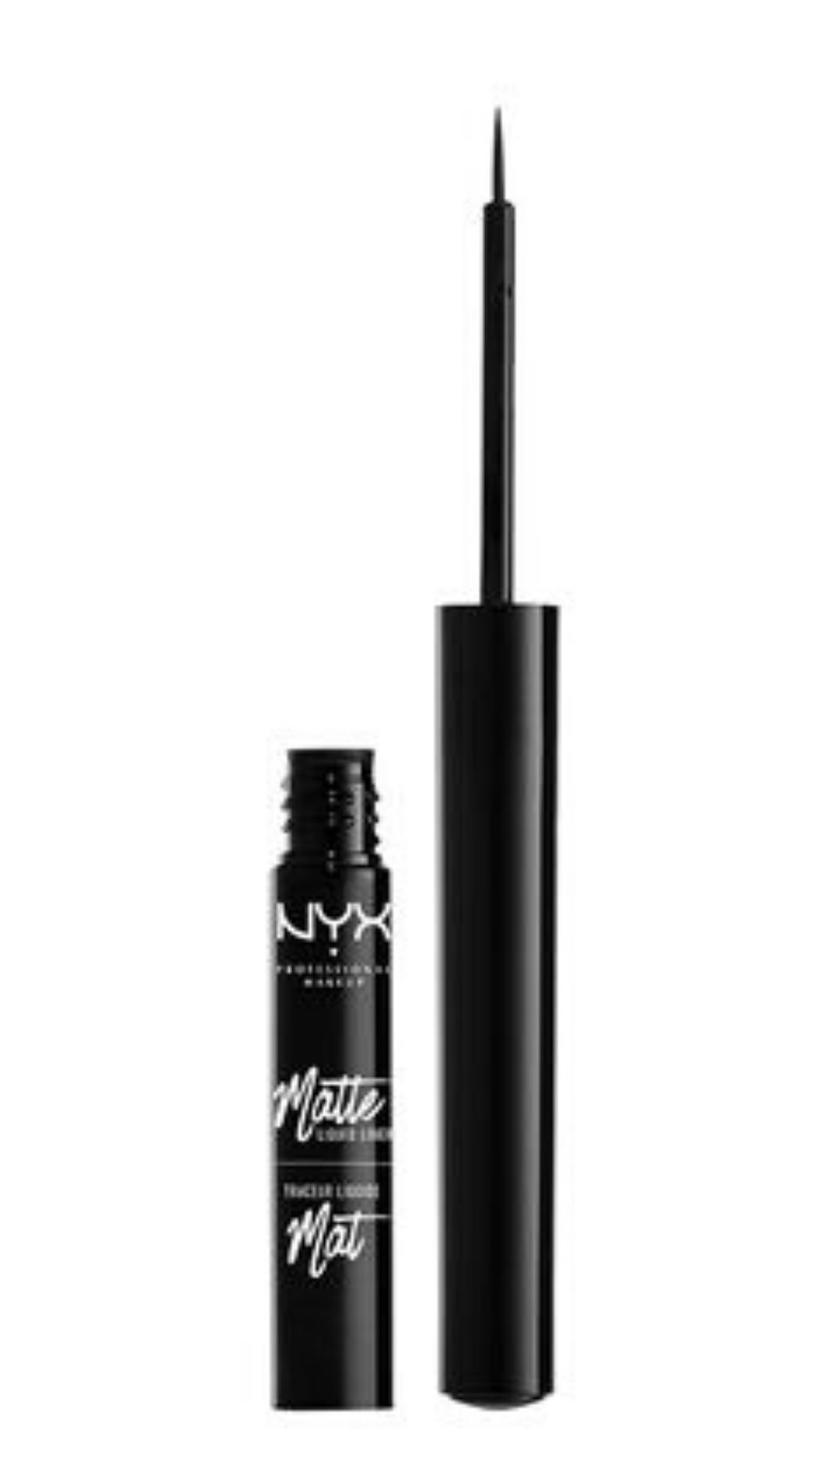 Eyeliner, Best Liquid Eyeliners, Smudge Proof eyeliners, Best Beauty finds